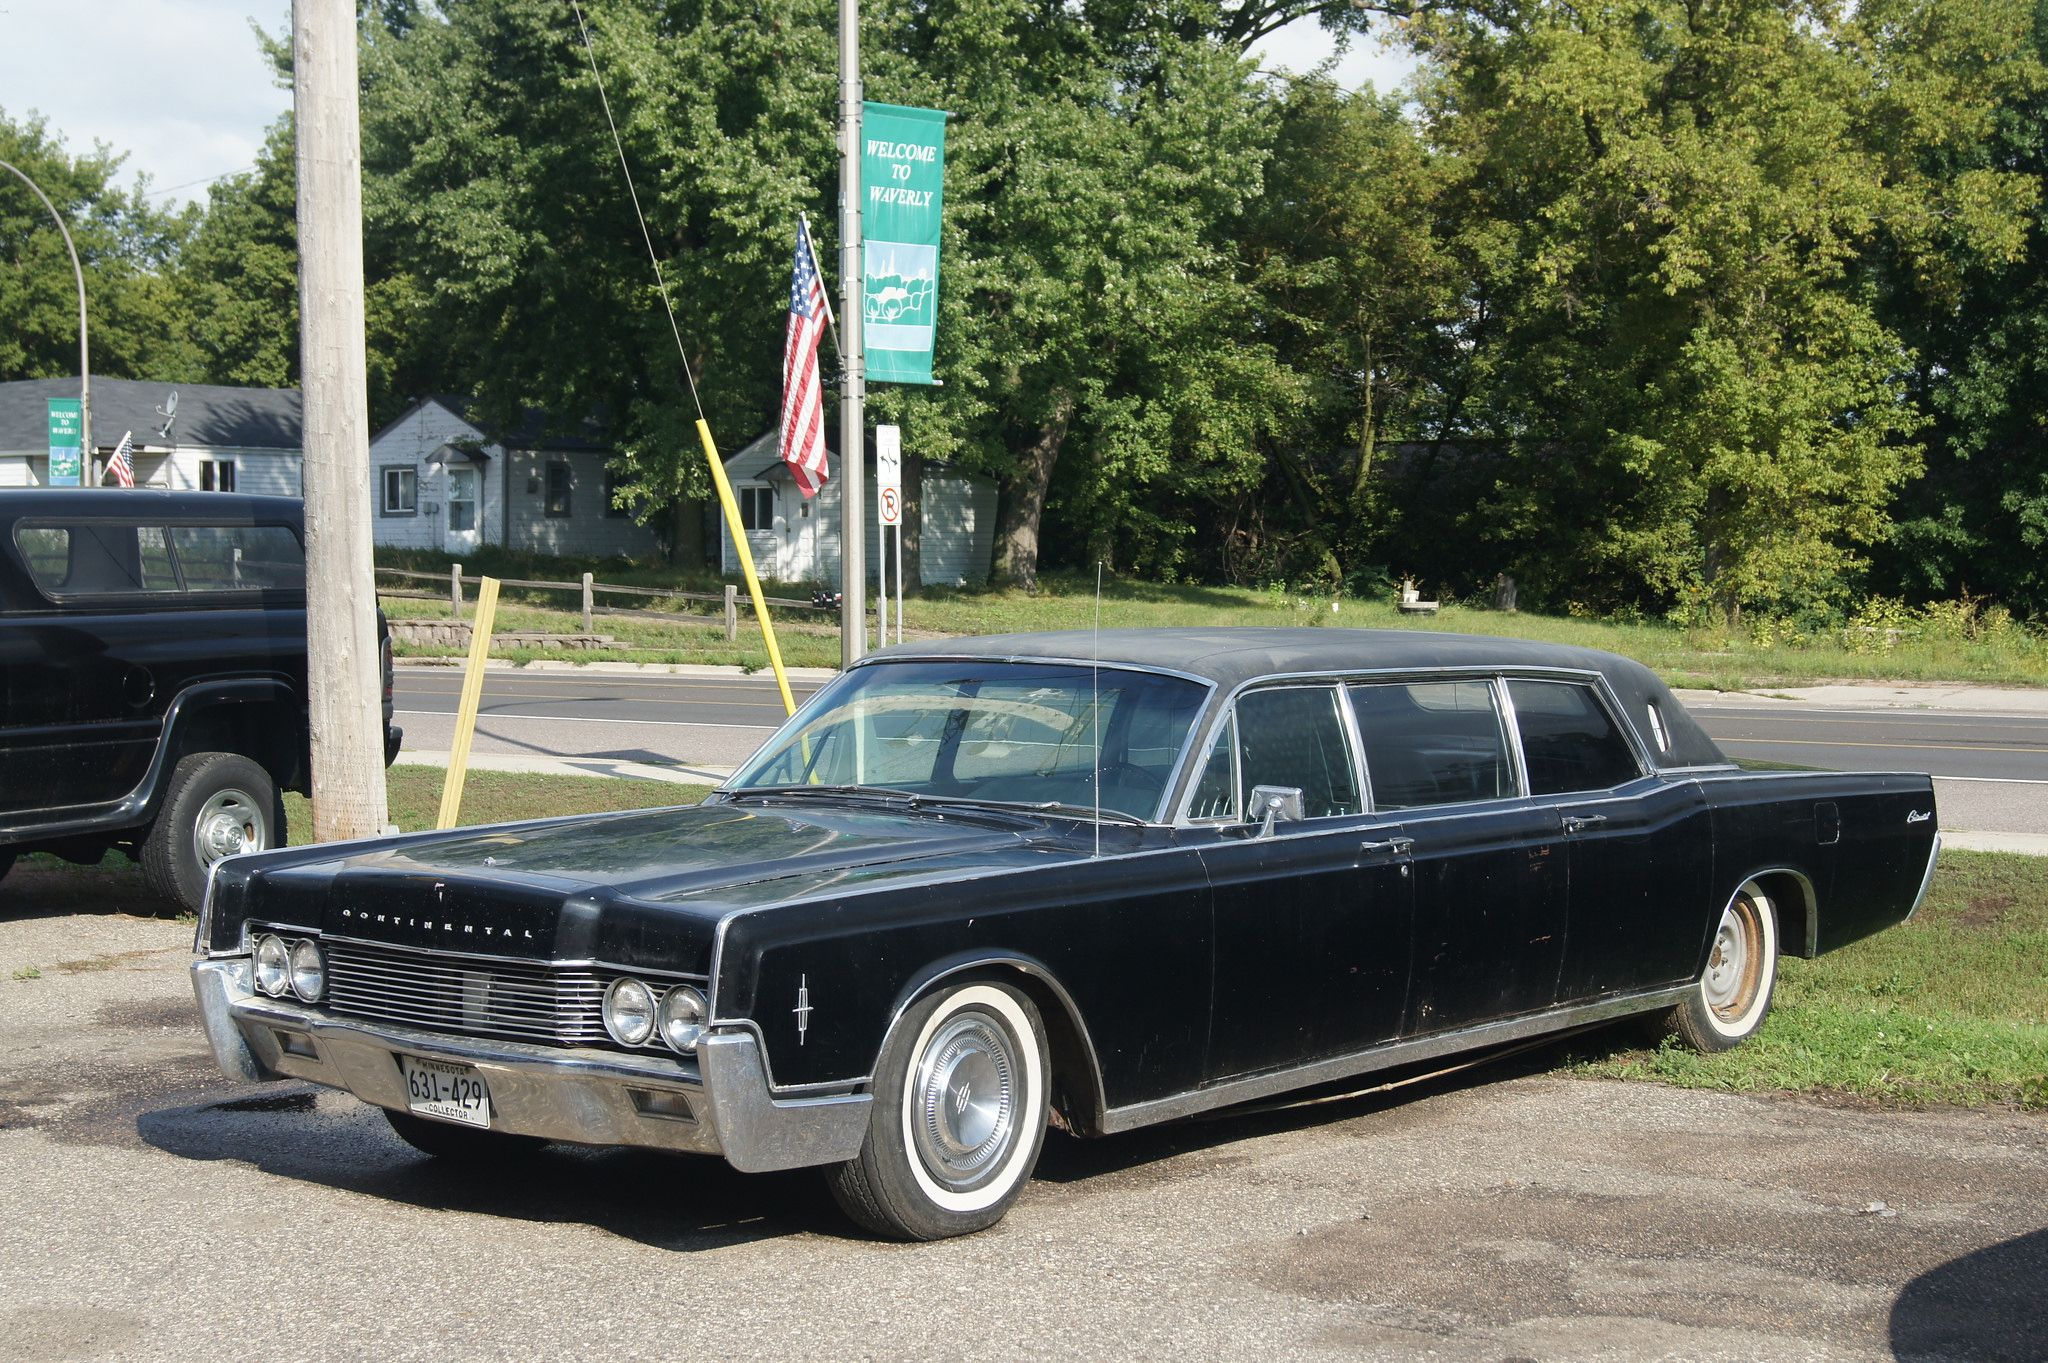 1964 lincoln continental presidential limo photo on june 28 2013 motor trend classic cars pinterest lincoln continental limo and cadillac